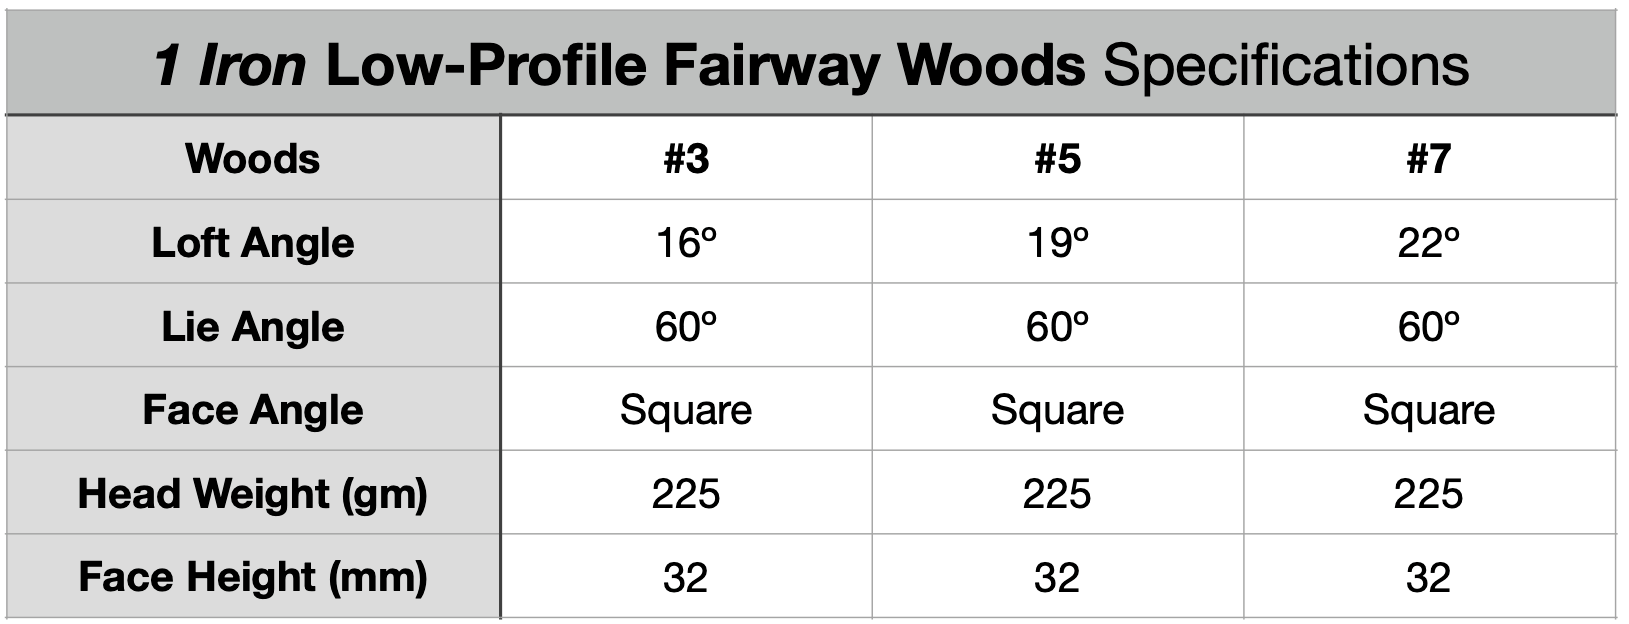 1 Iron Low-Profile Wood Specifications Chart